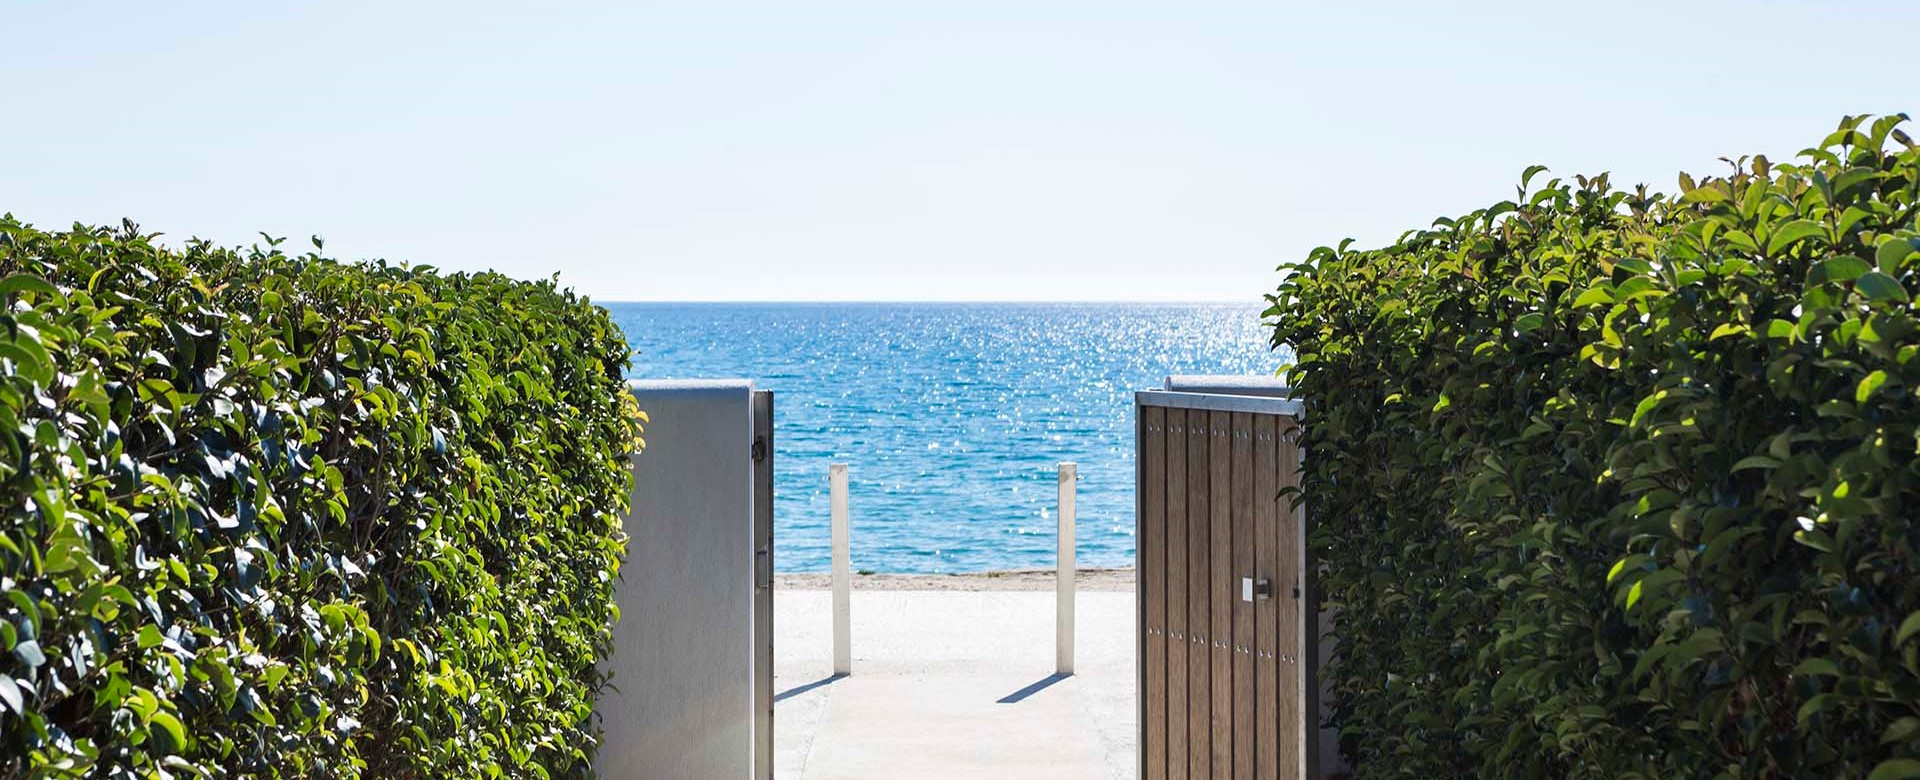 Step out of the Beachfront Suites, straight onto the coastline at Lourdata, Kefalonia